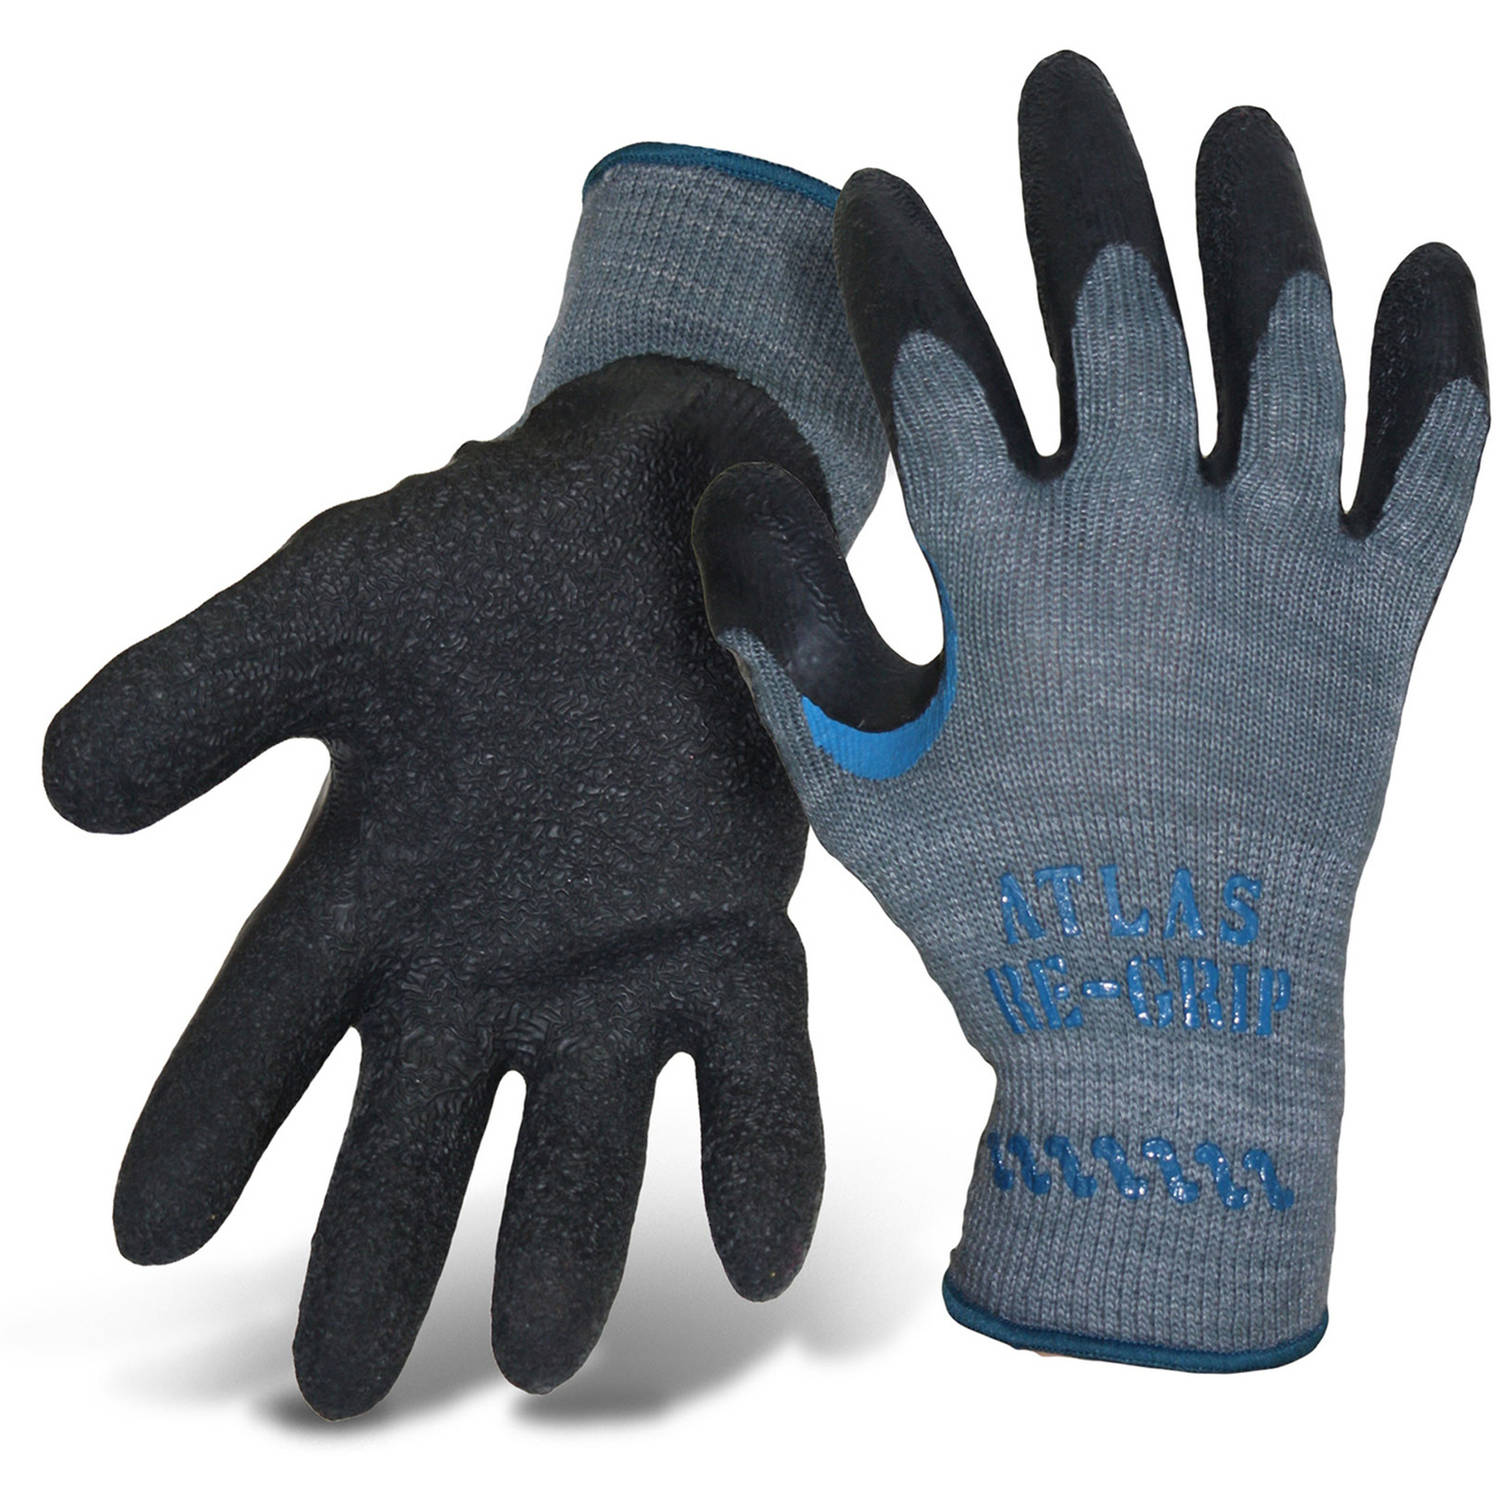 Atlas Glove 8330M Medium Reinforced Grip Gloves